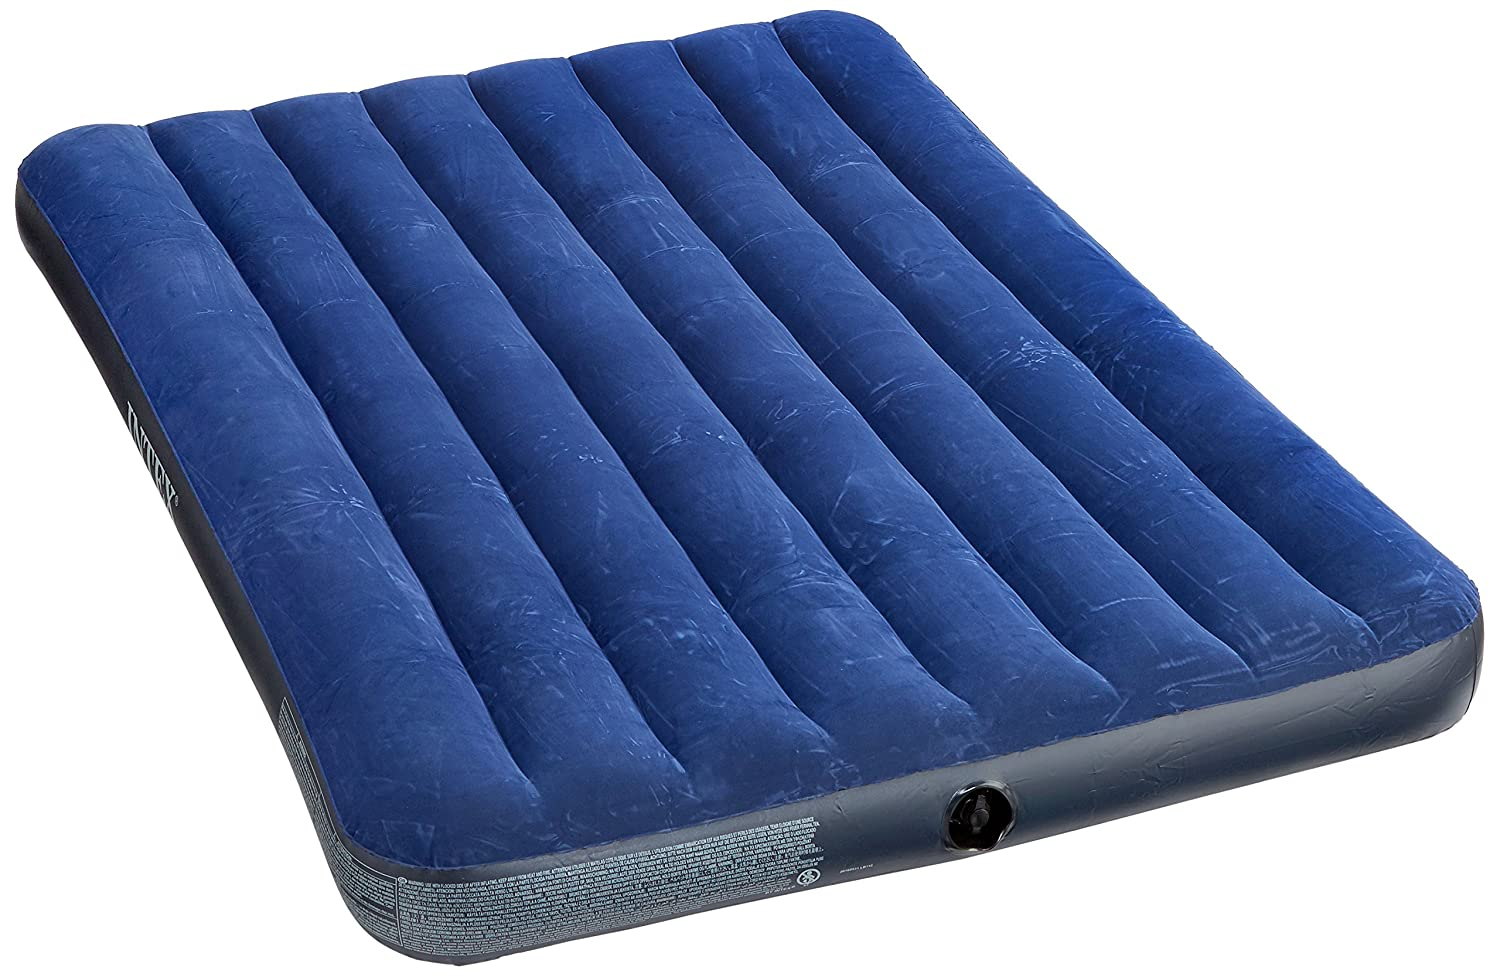 Intex 2-Pers Full Downy Air Bed - Blue, N/A 68758